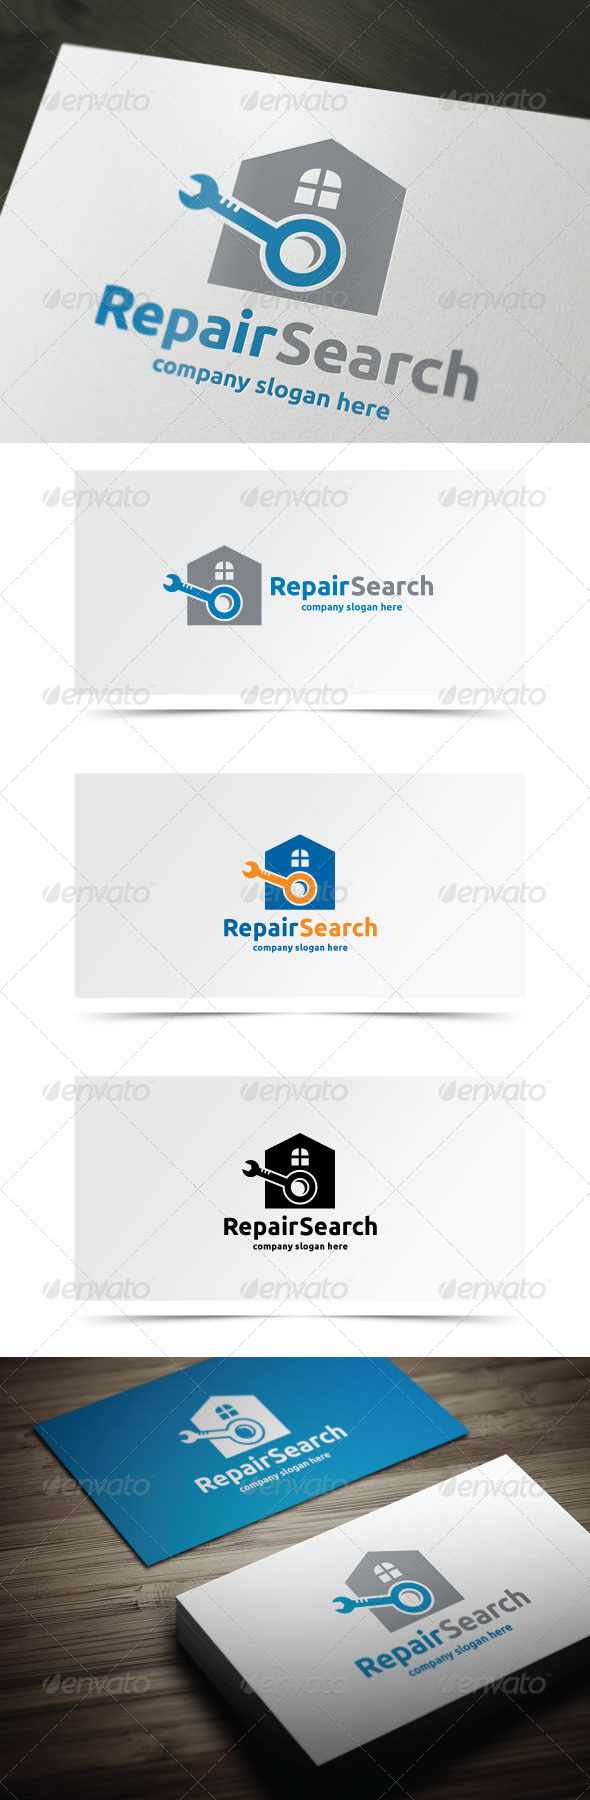 GraphicRiver Repair Search 7992138